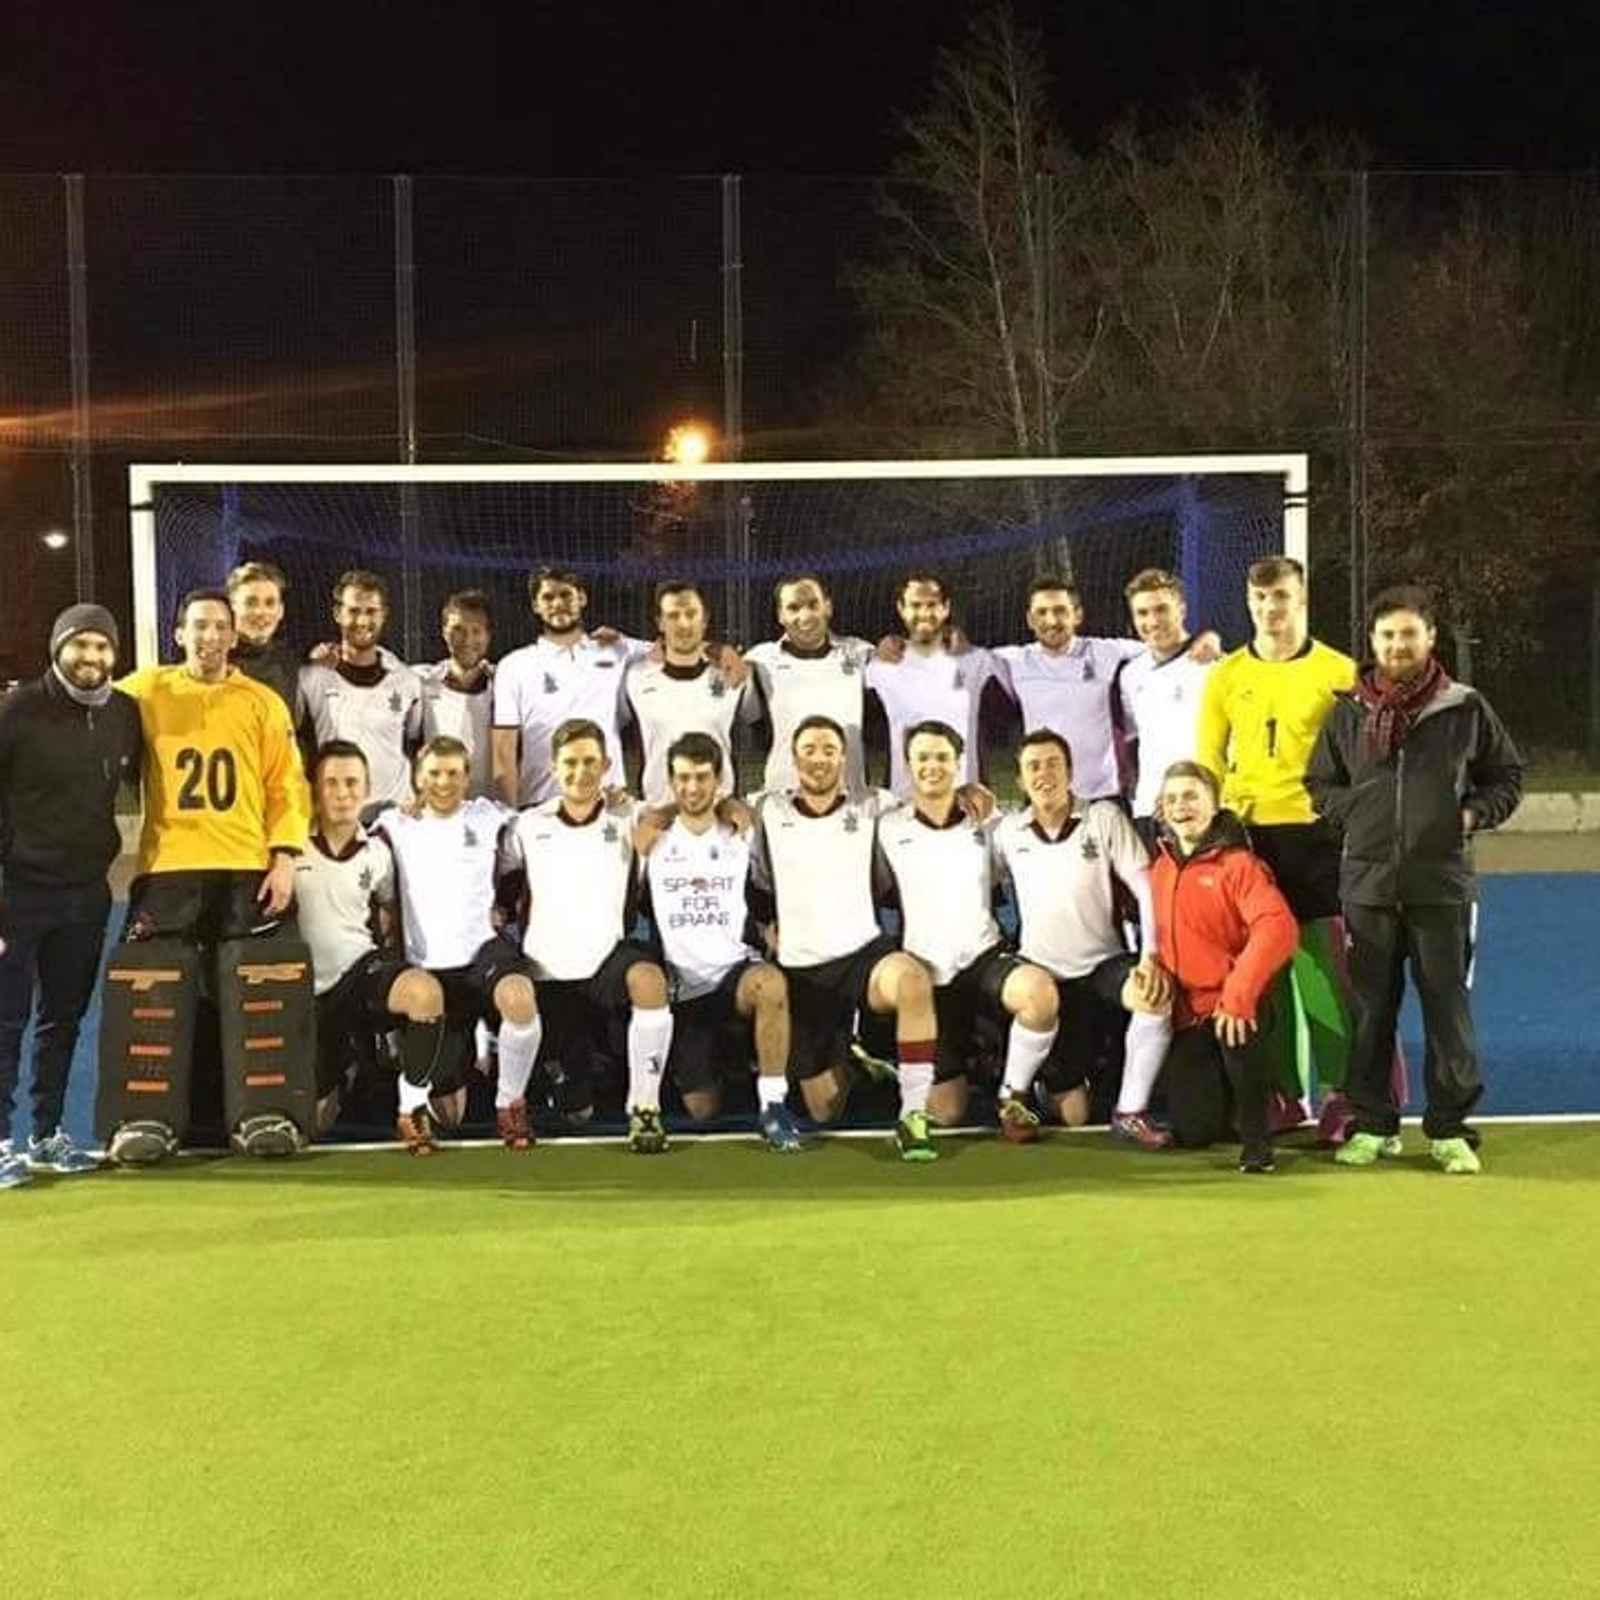 Men's 1st and 2nd XI Coaching Opportunity